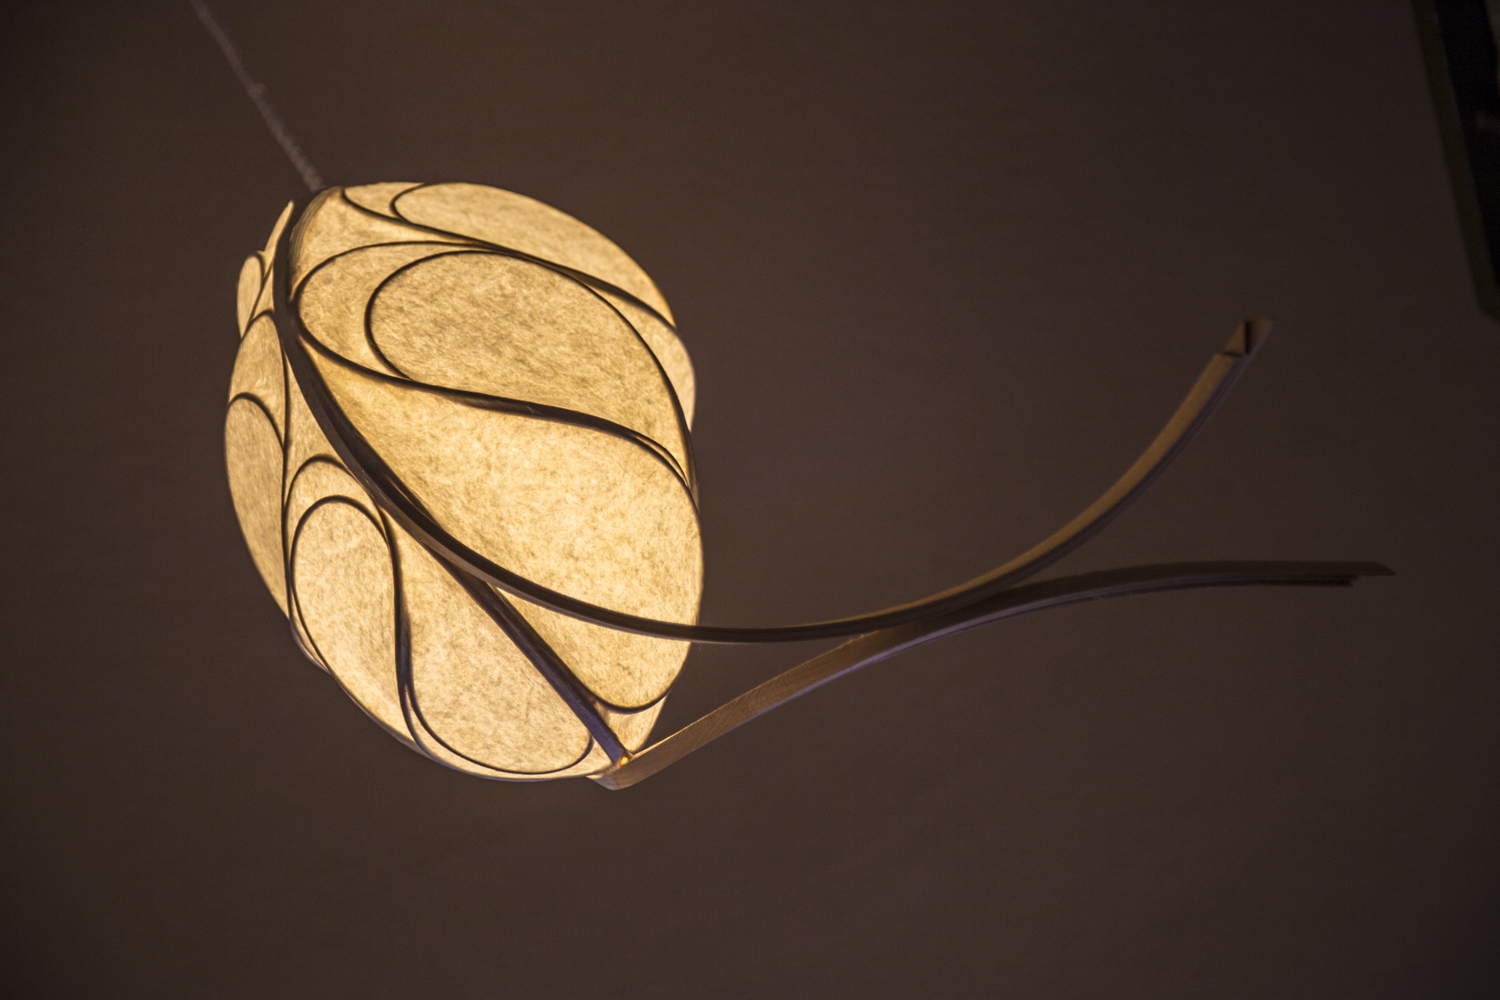 Stephen White's light sculpture... one of many masterpieces!